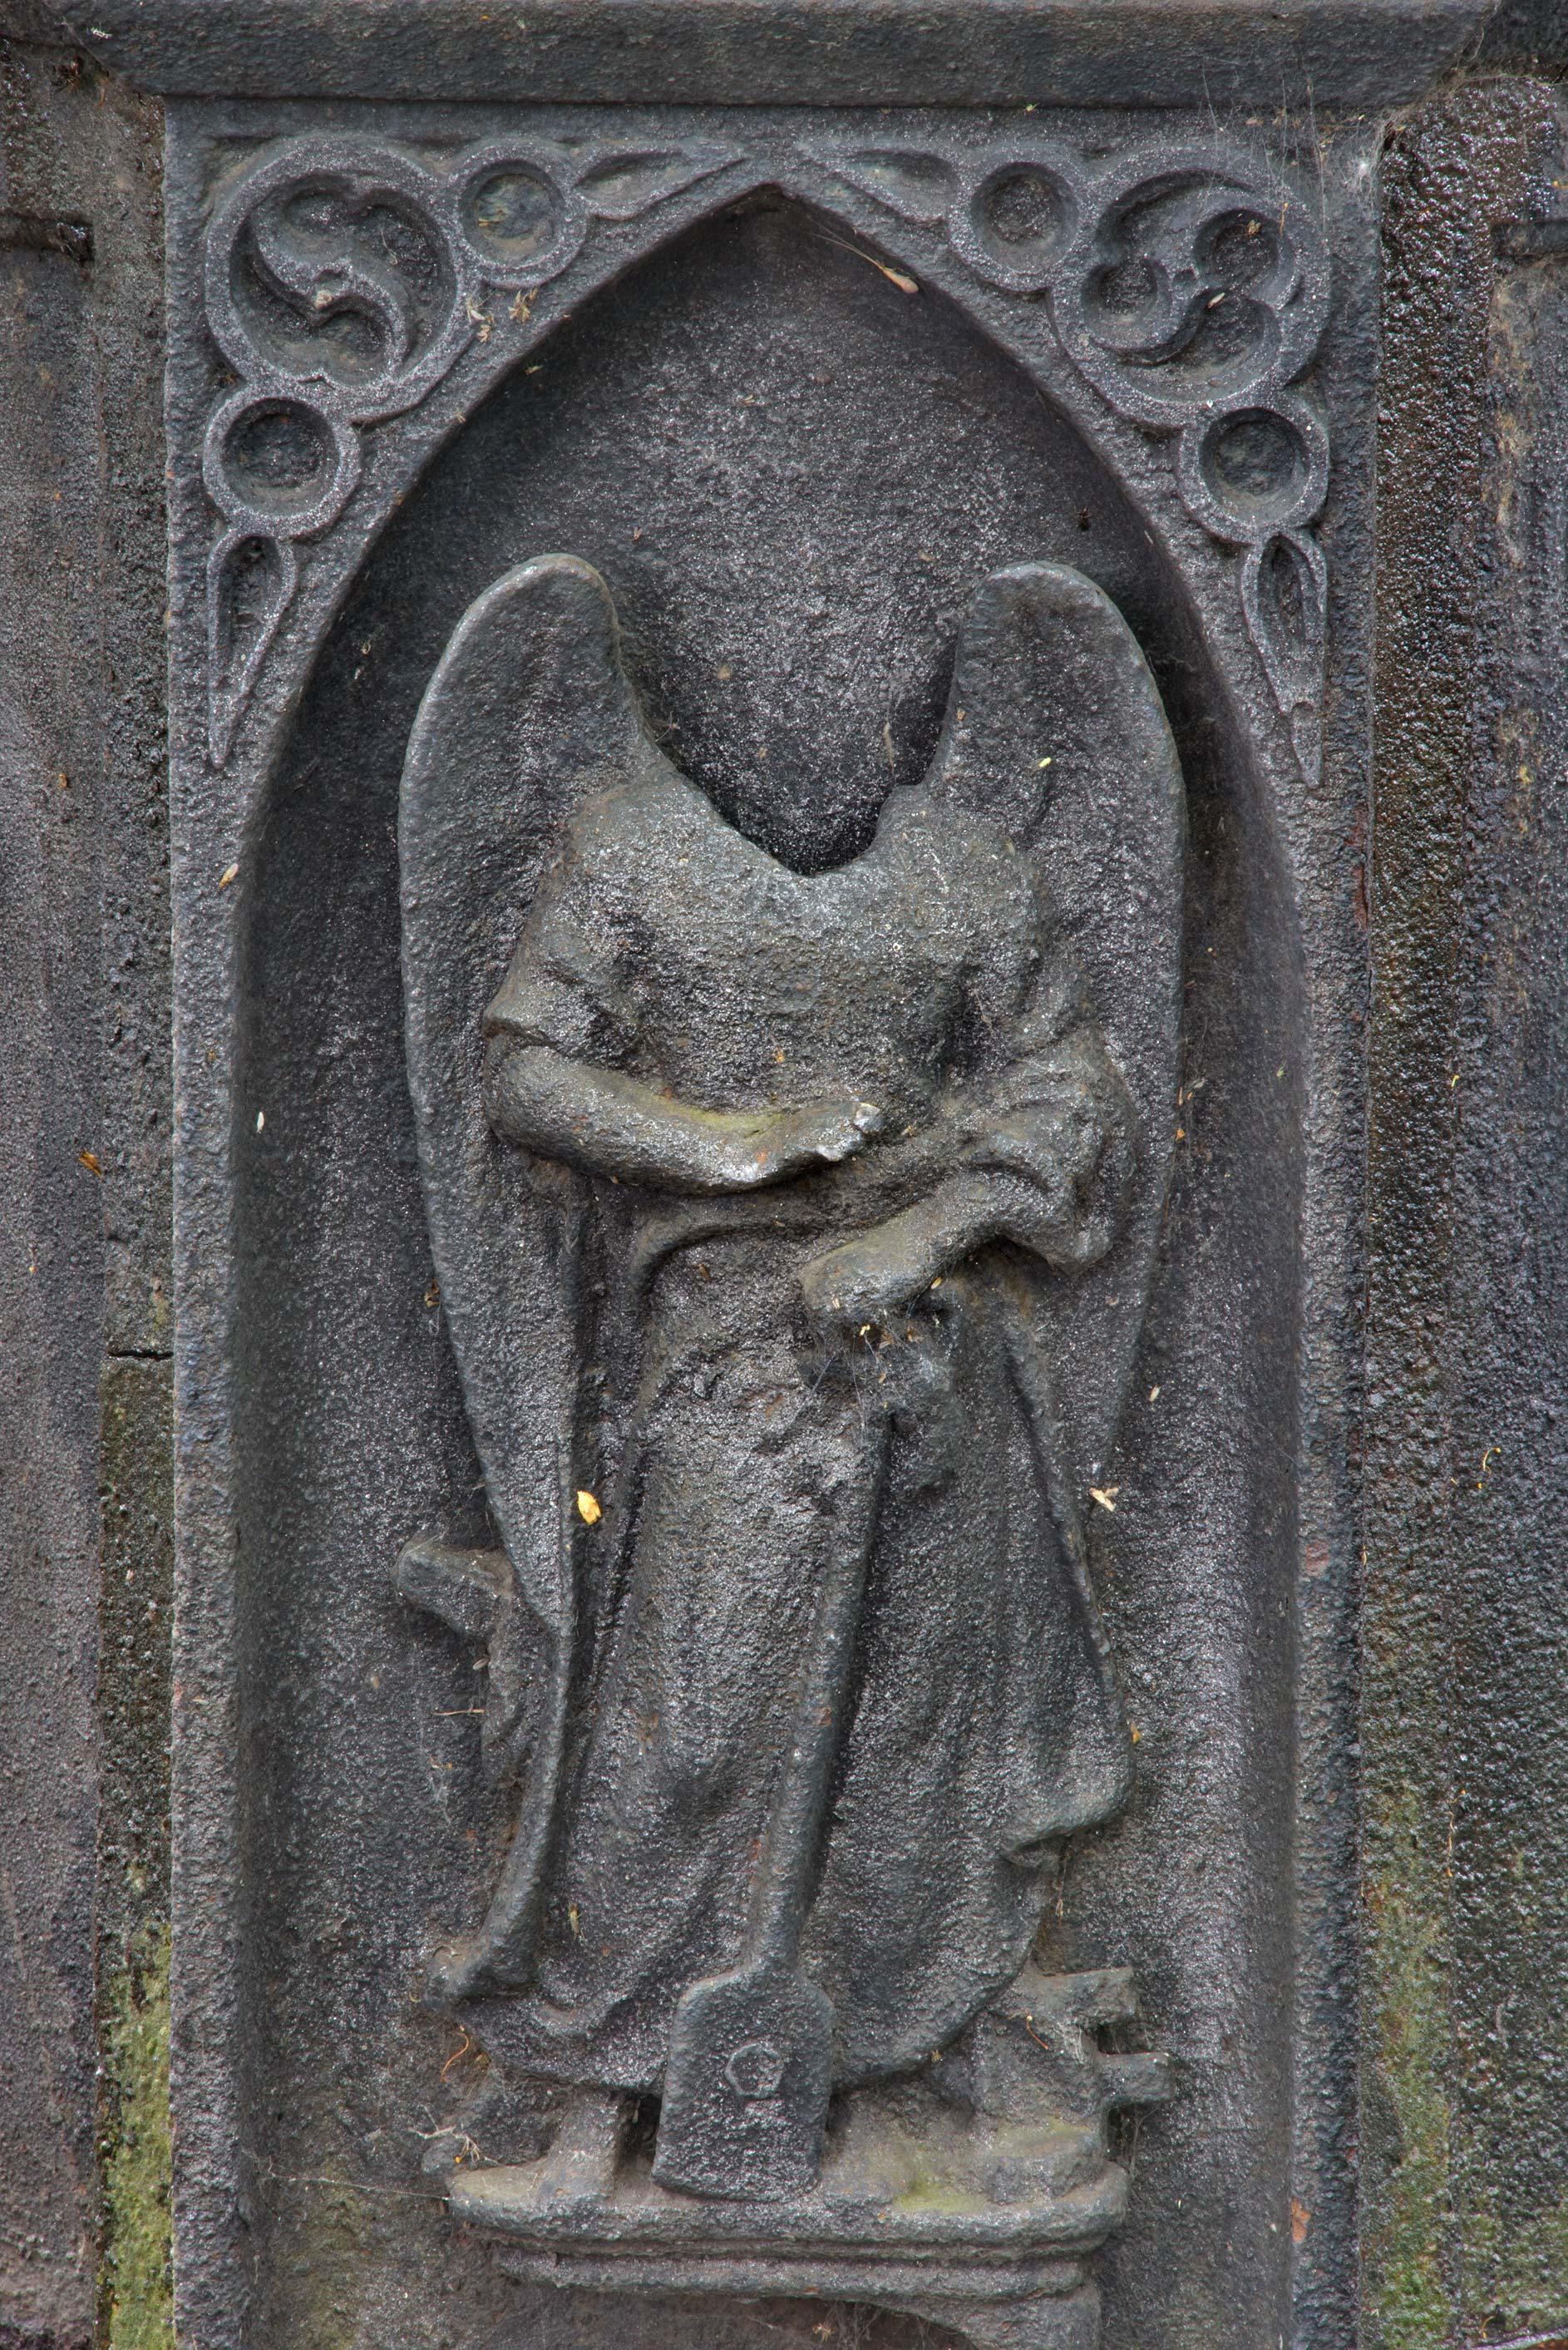 Headless iron angel on a tomb in Necropolis of...Cemetery). St.Petersburg, Russia